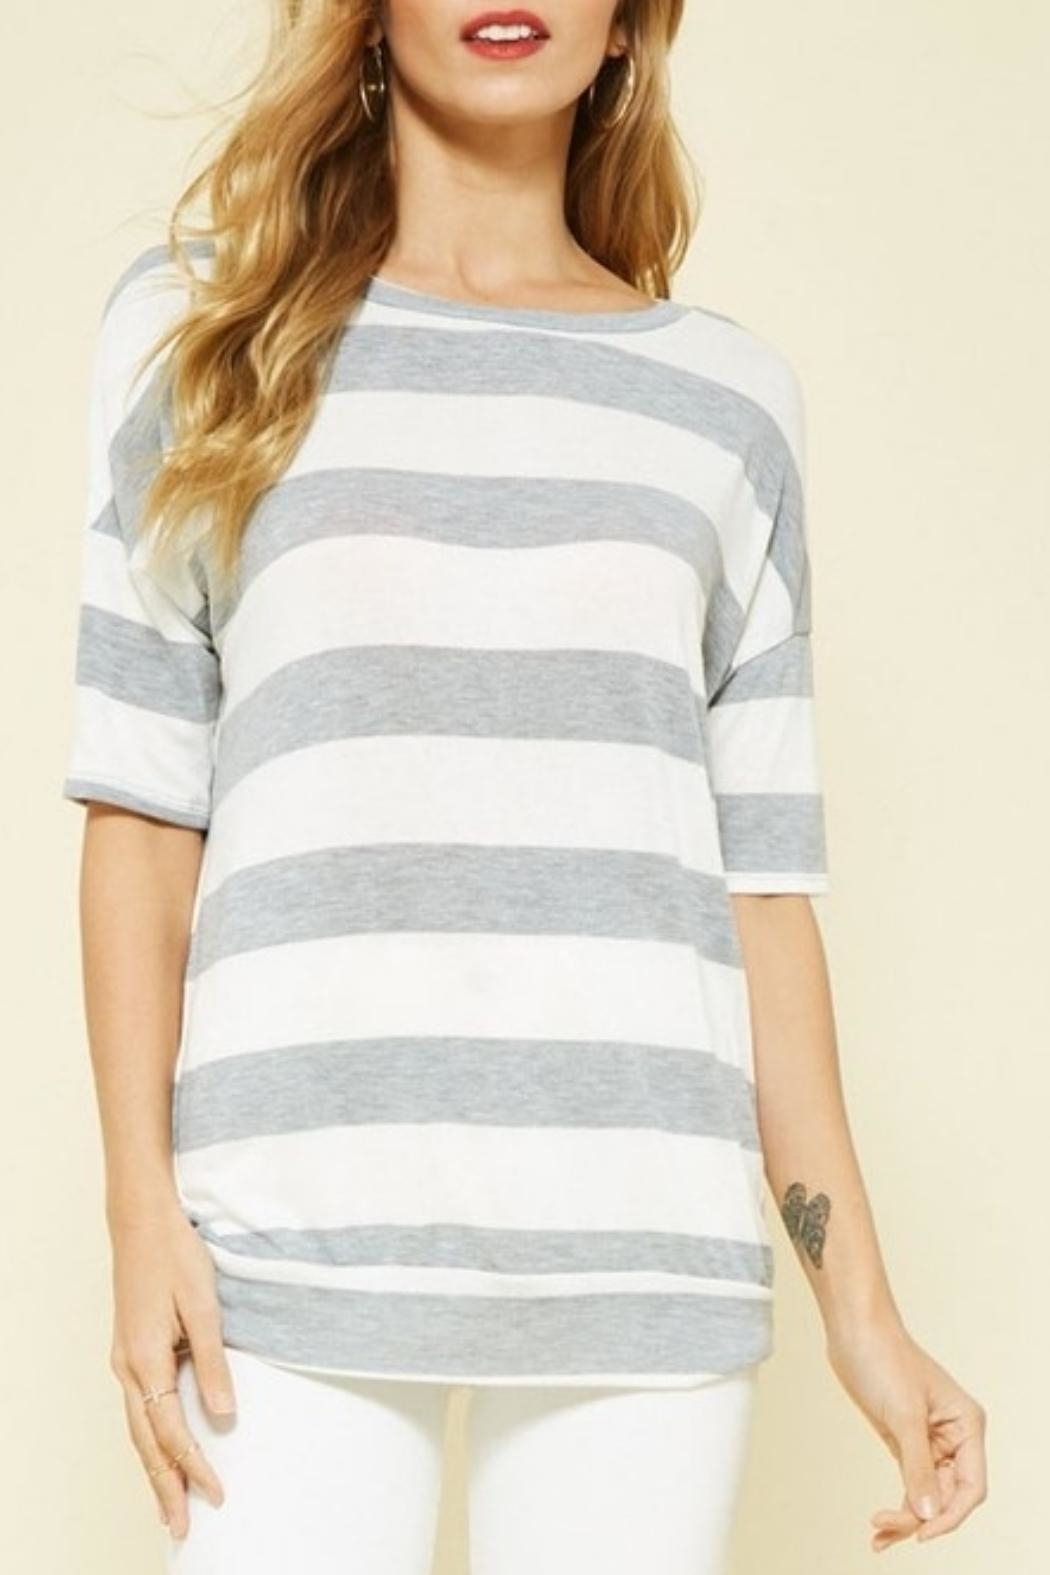 Promesa Usa Open Knit Top From Chicago By Chic Boutique Shoptiques